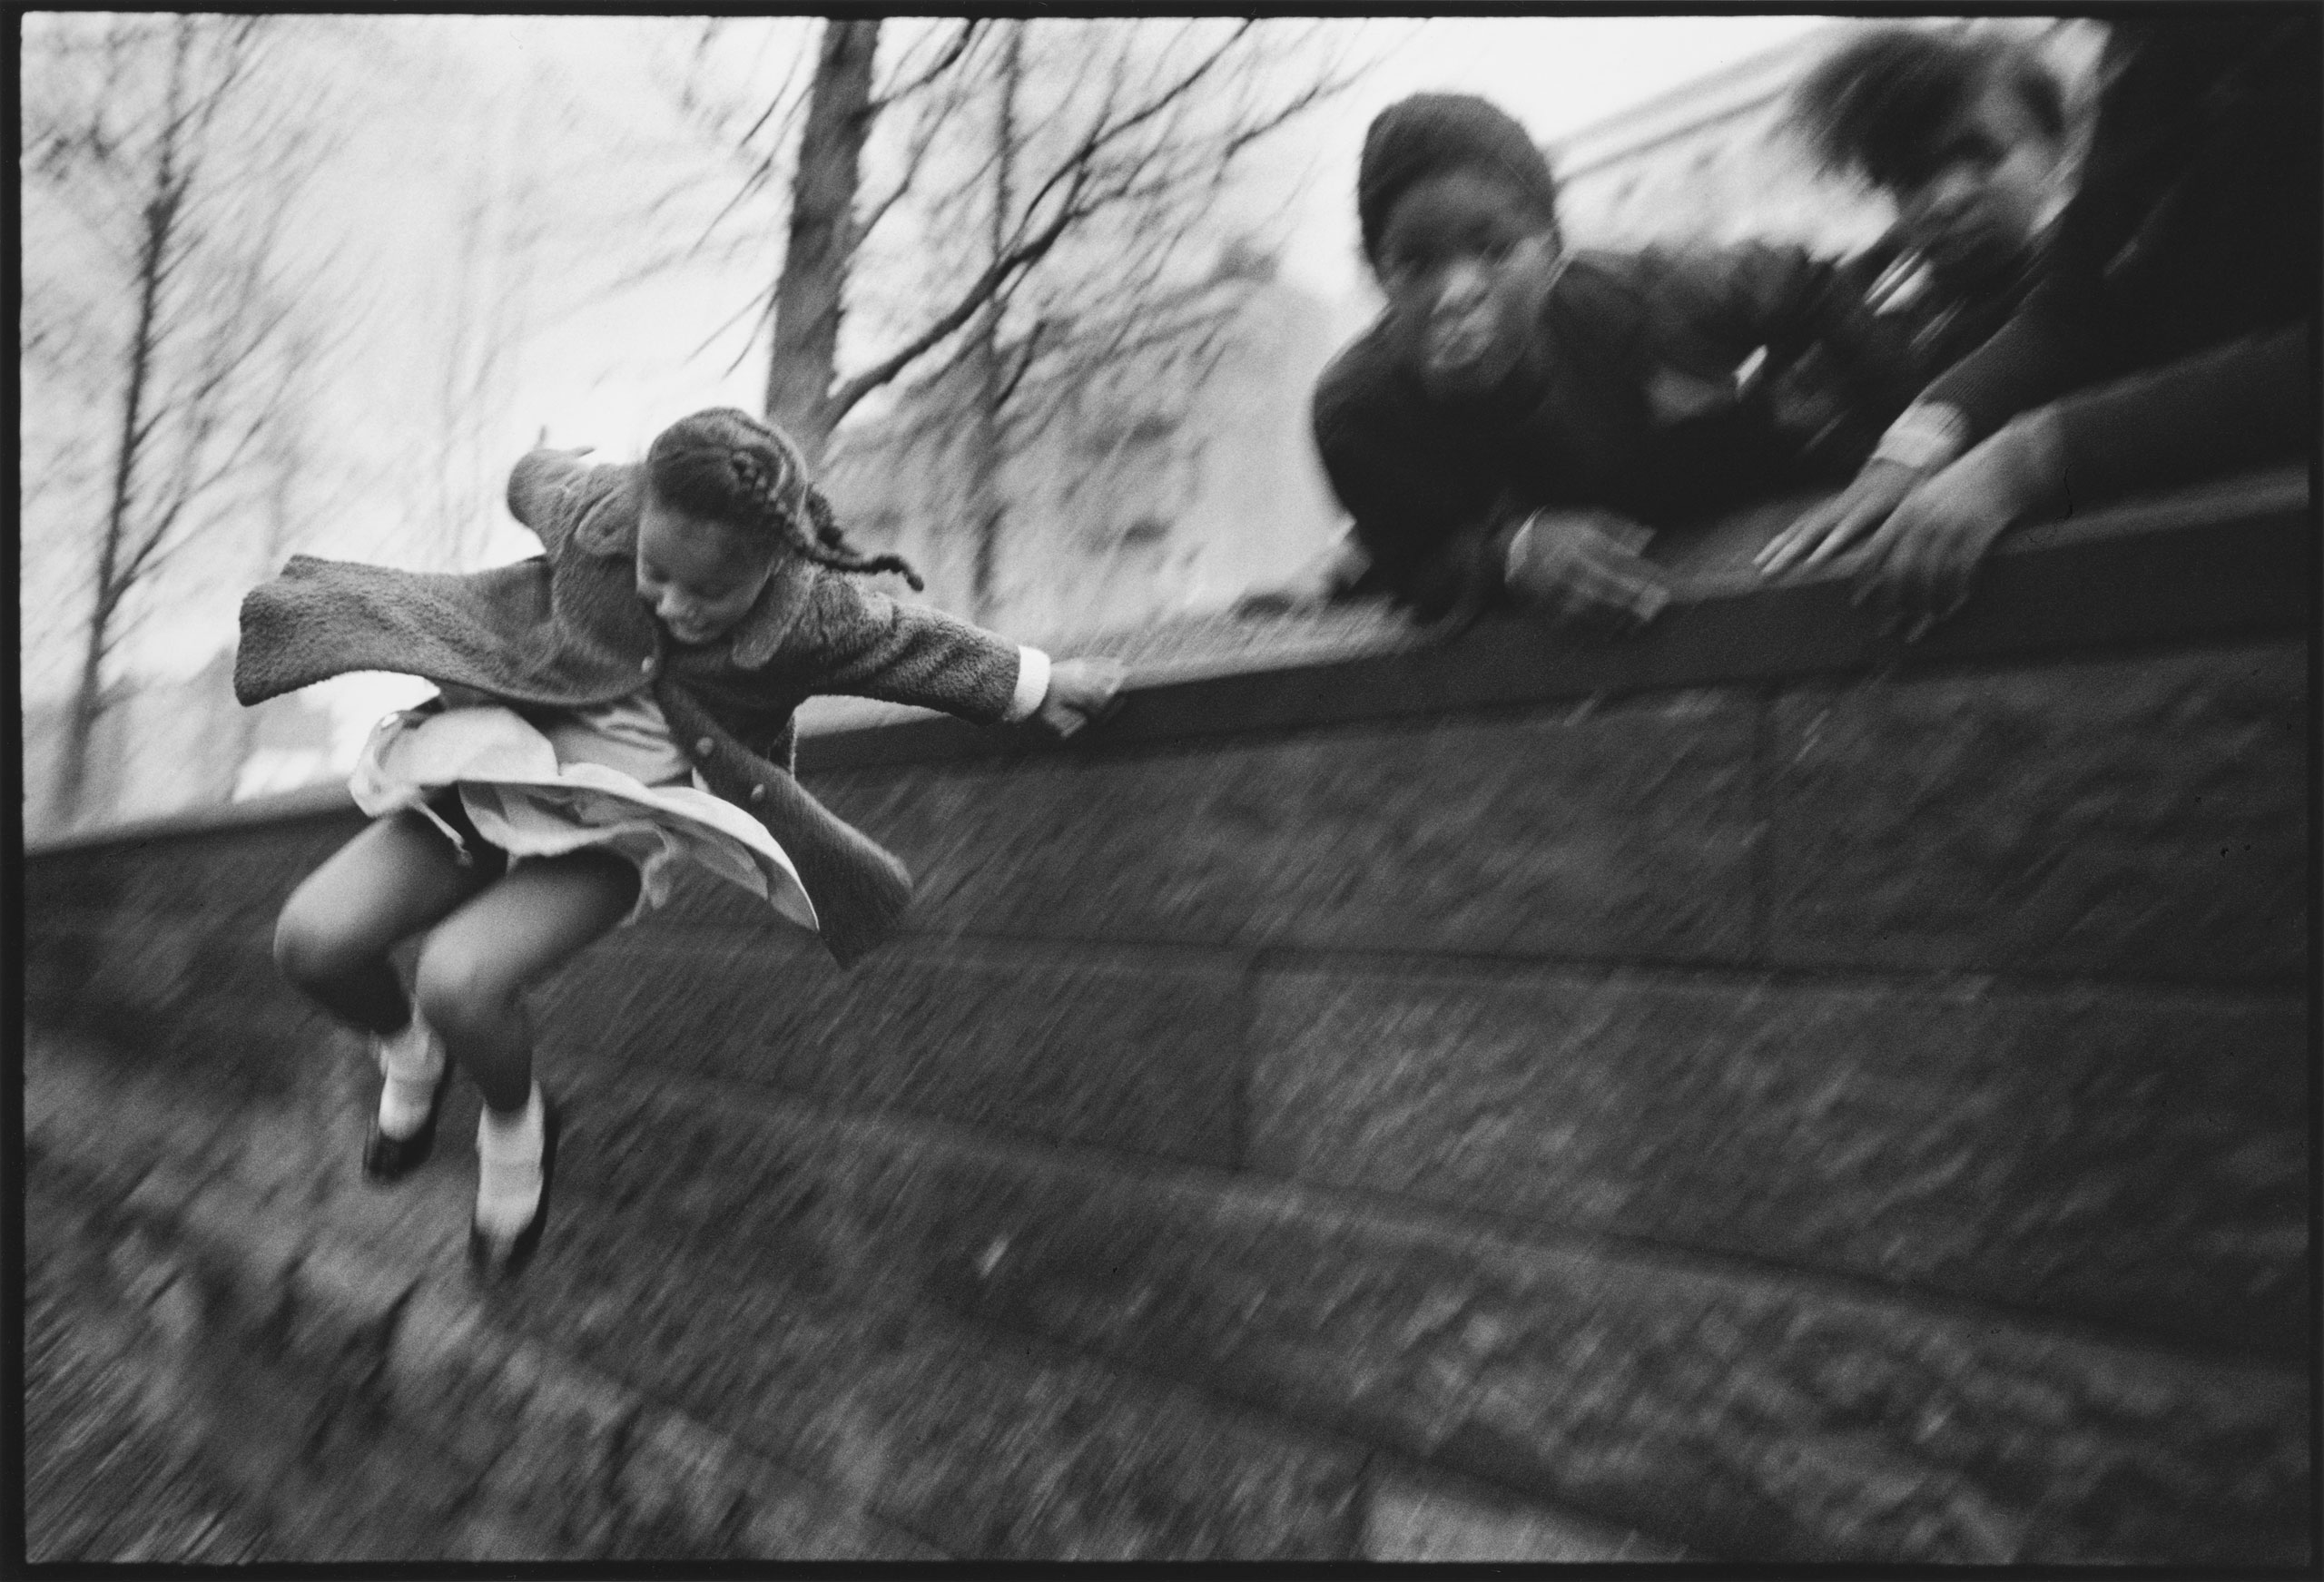 Girl jumping over a wall in Central Park. New York, 1967.